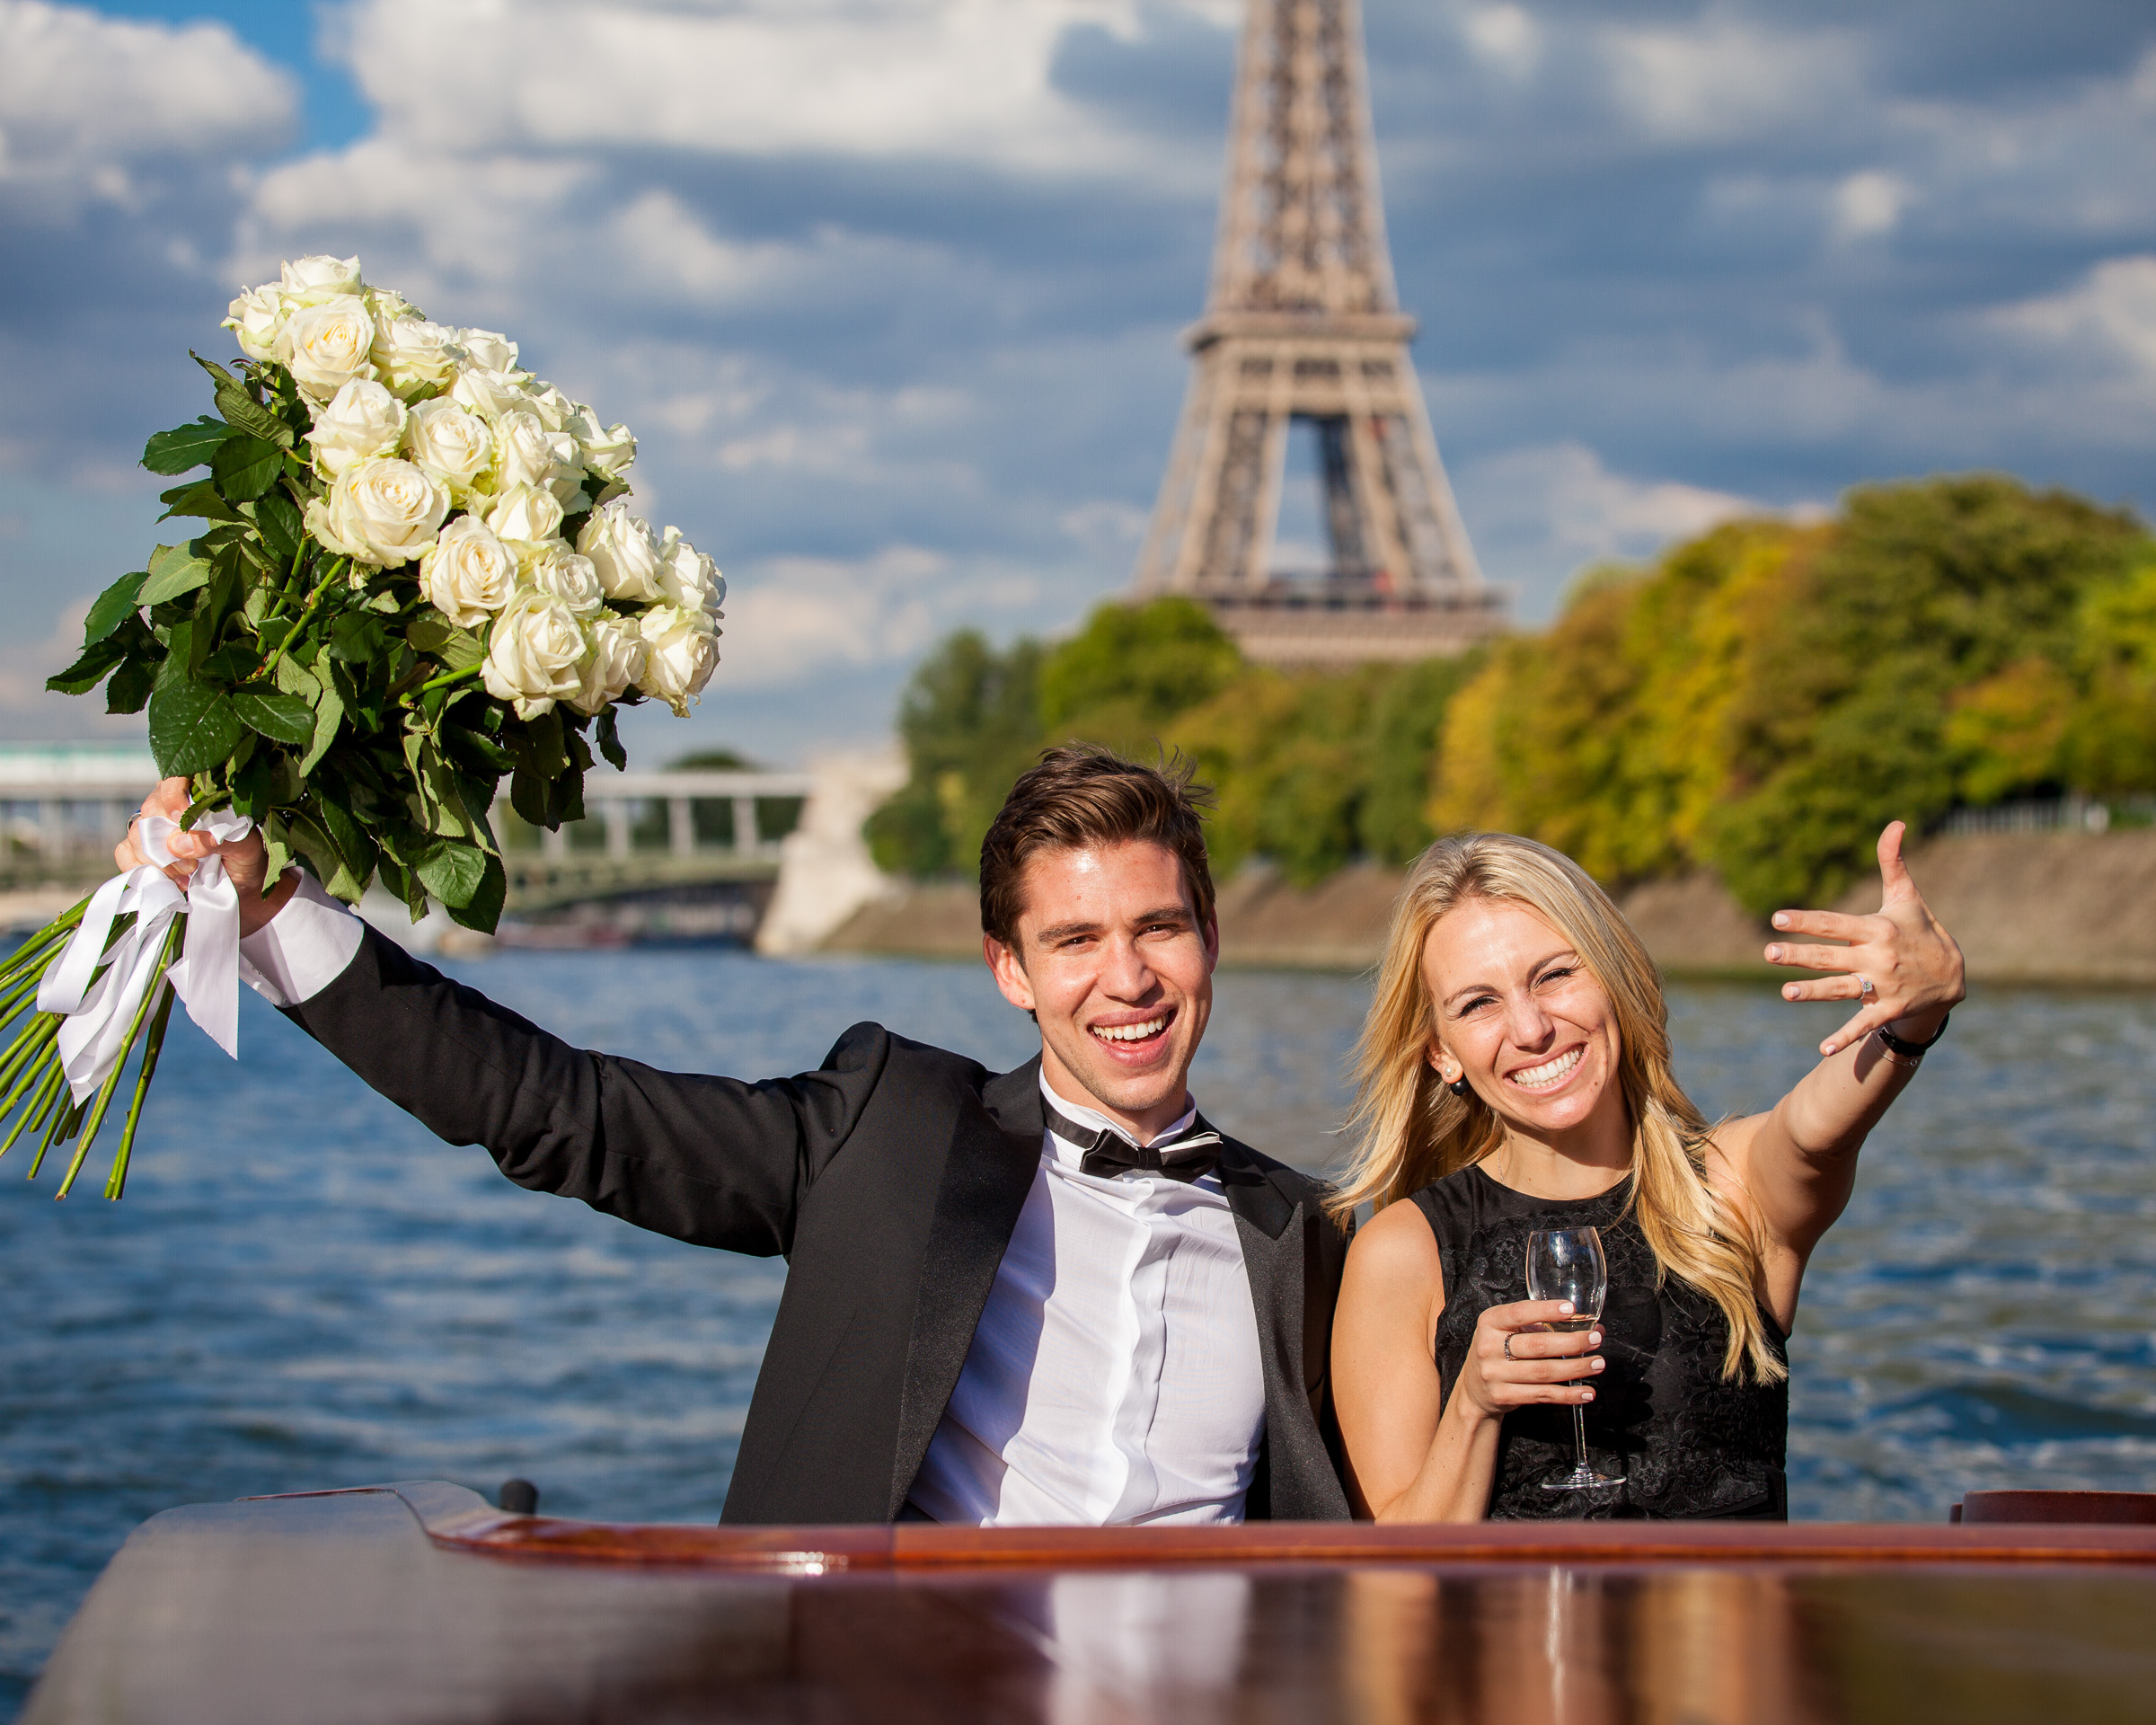 Paris Marriage Proposal Ideas